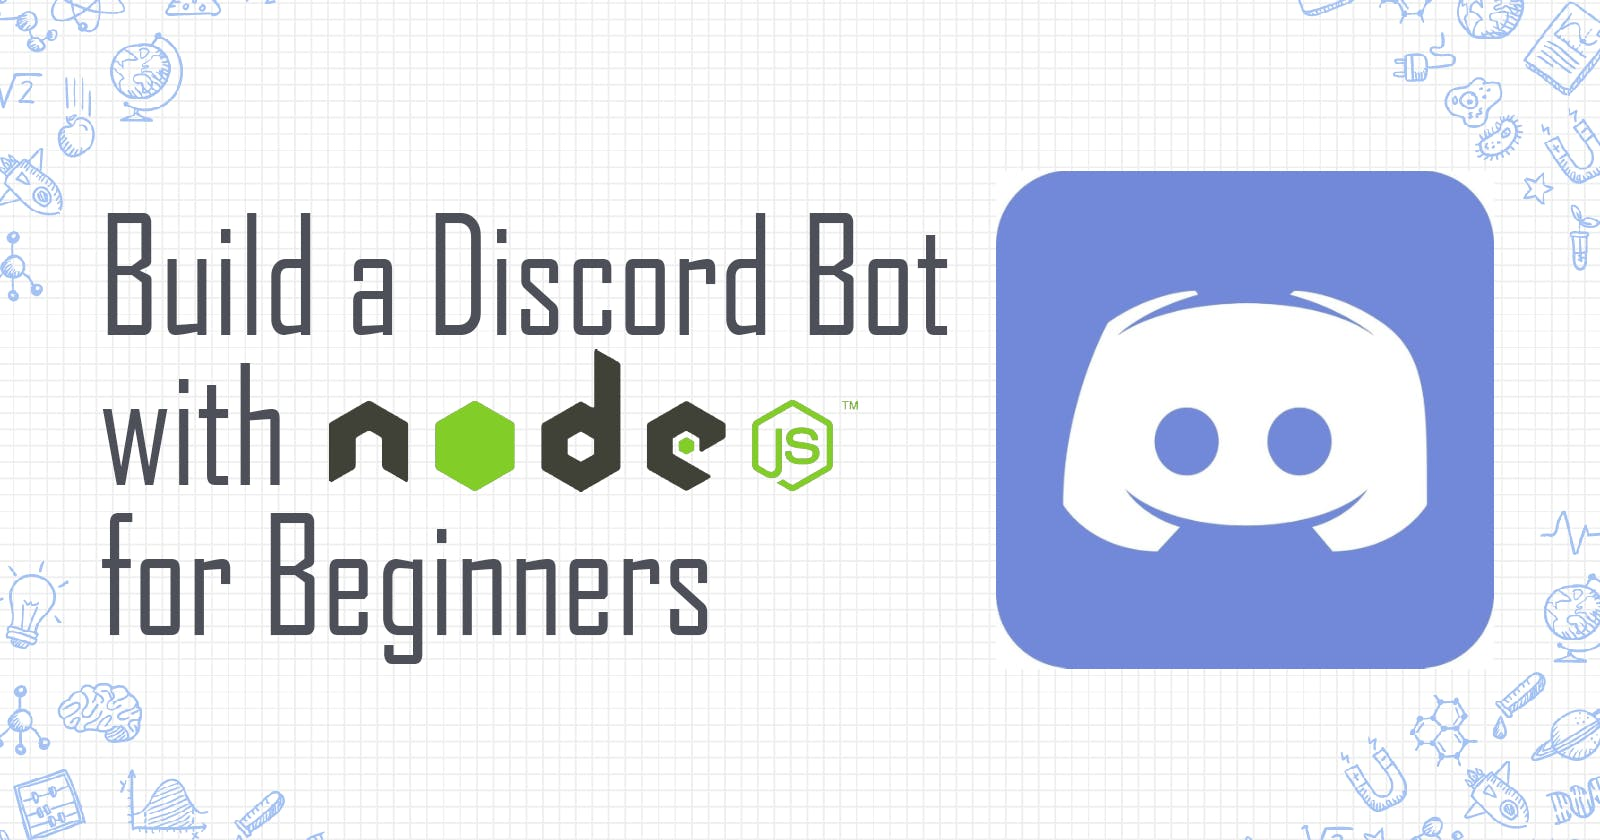 Build a Simple Discord Bot in Node.js for Beginners